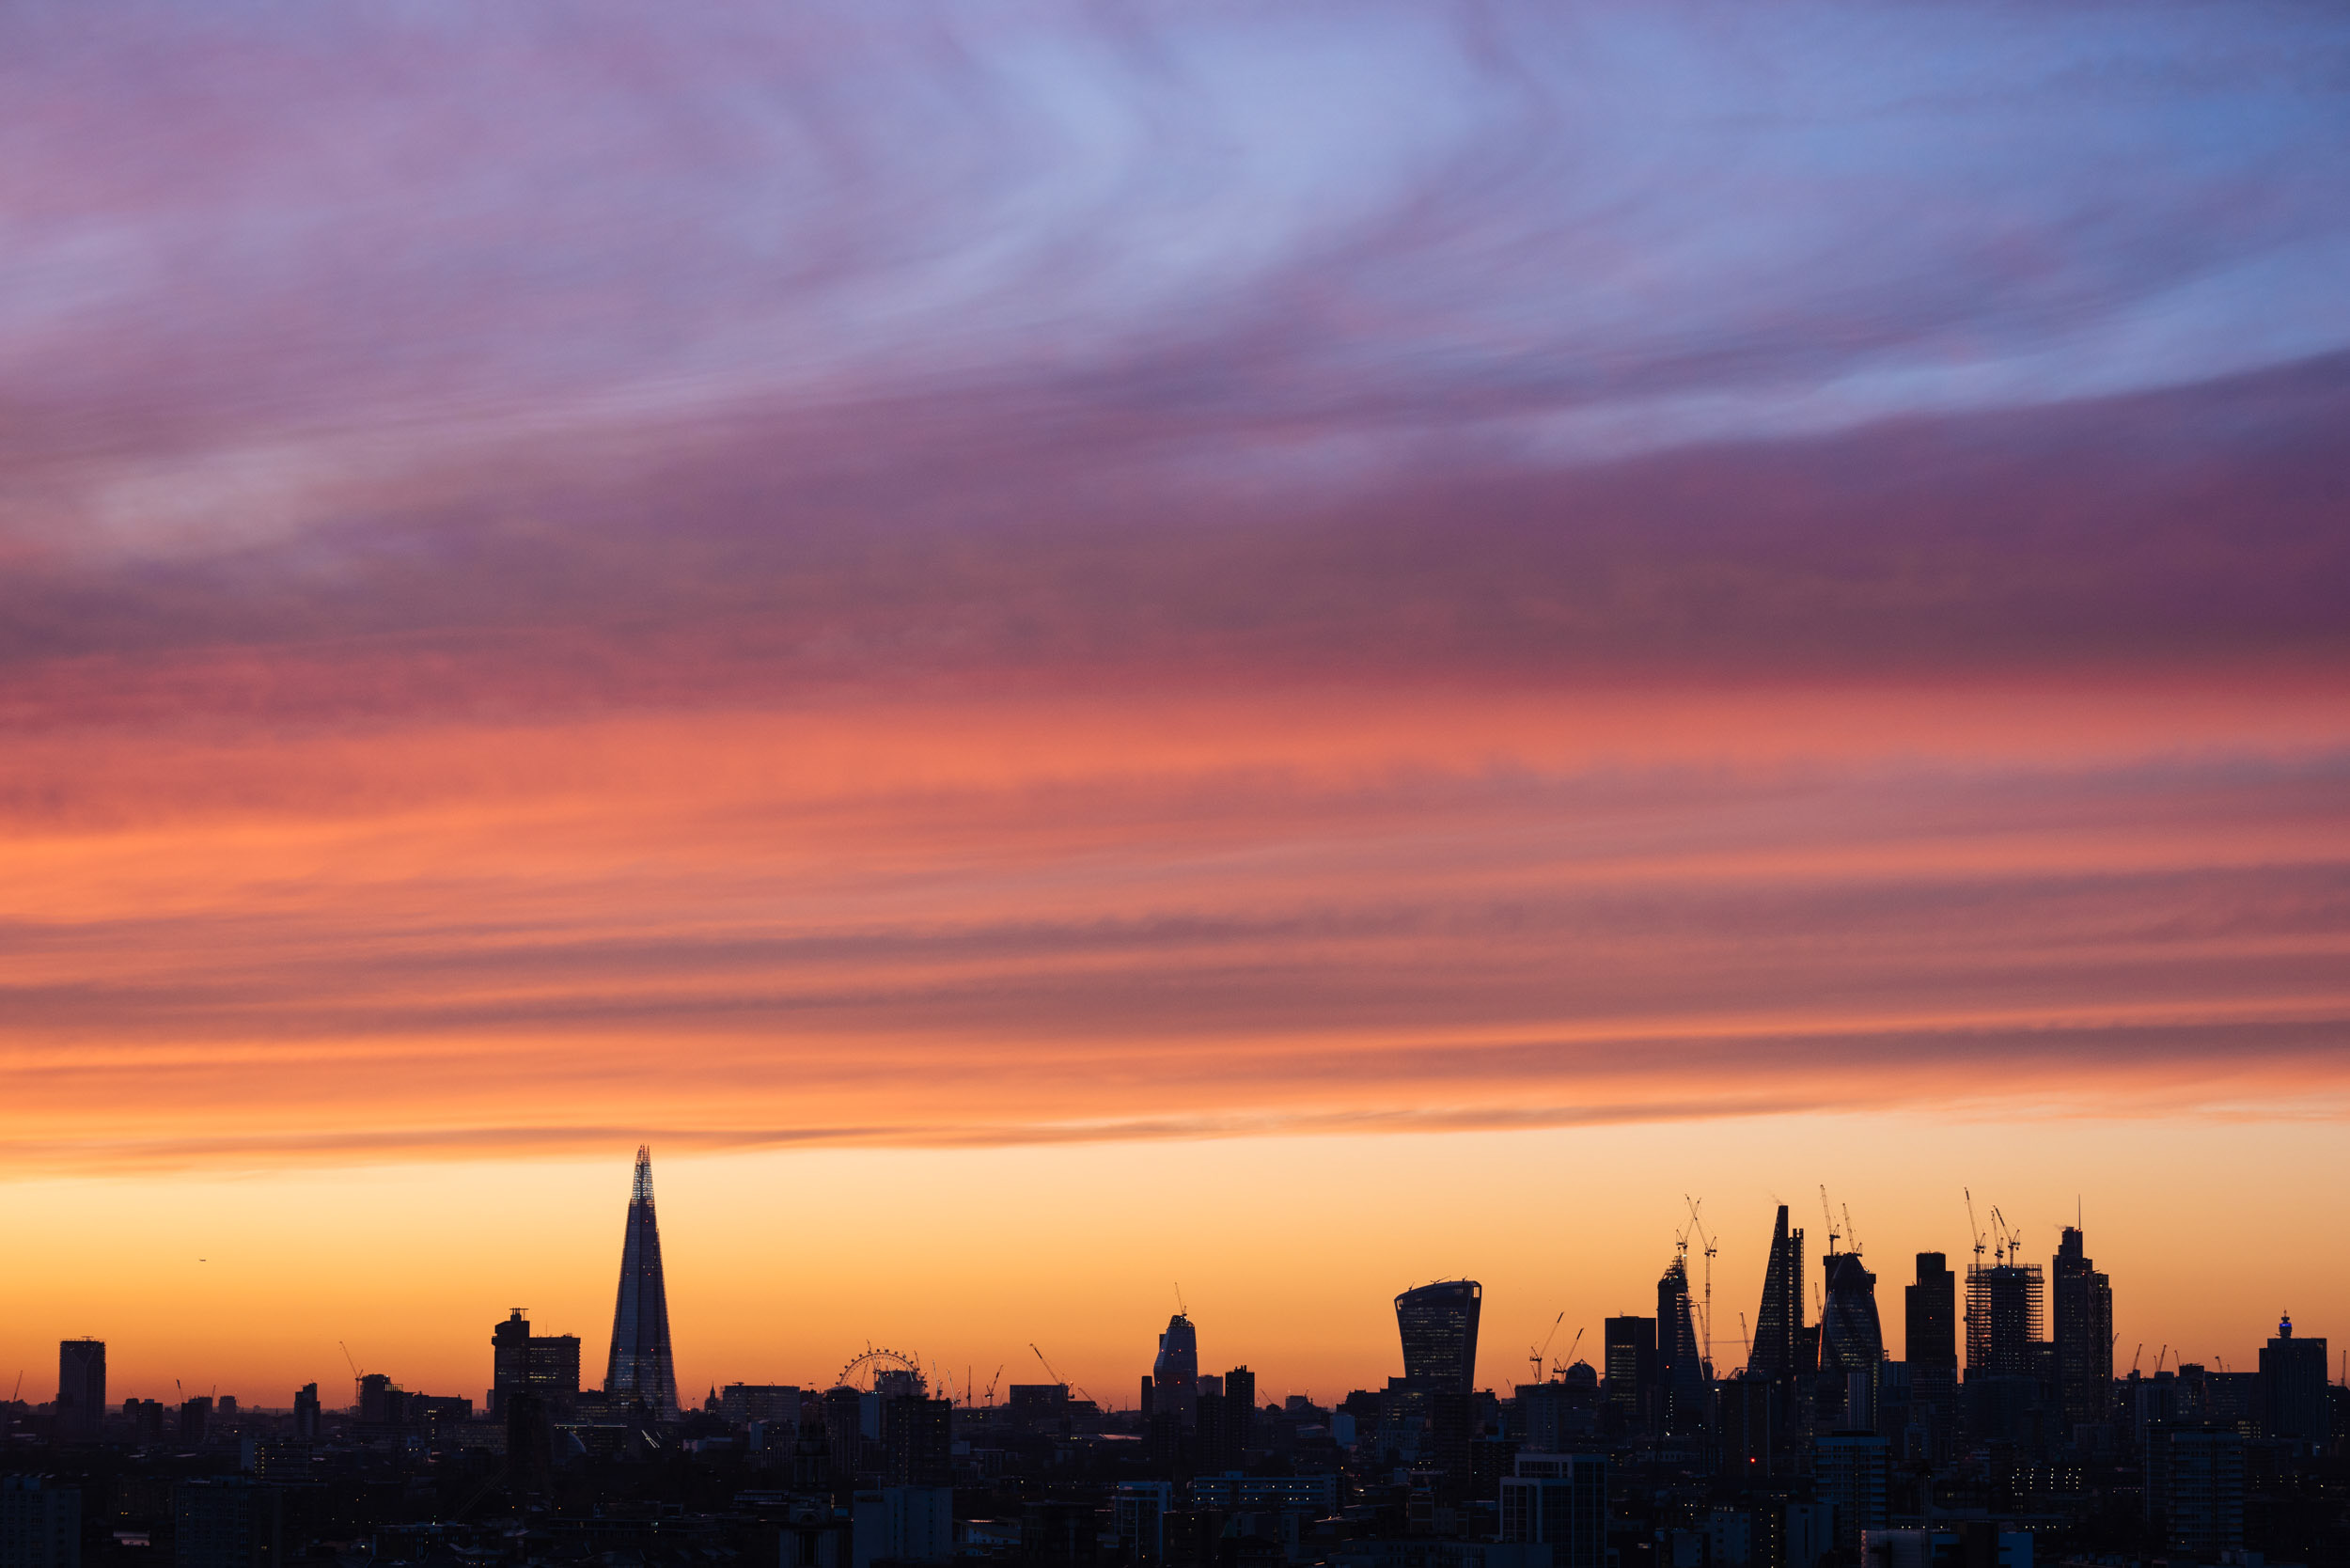 sunset-dusk-over-london-skyline-horizon-high-rise-city